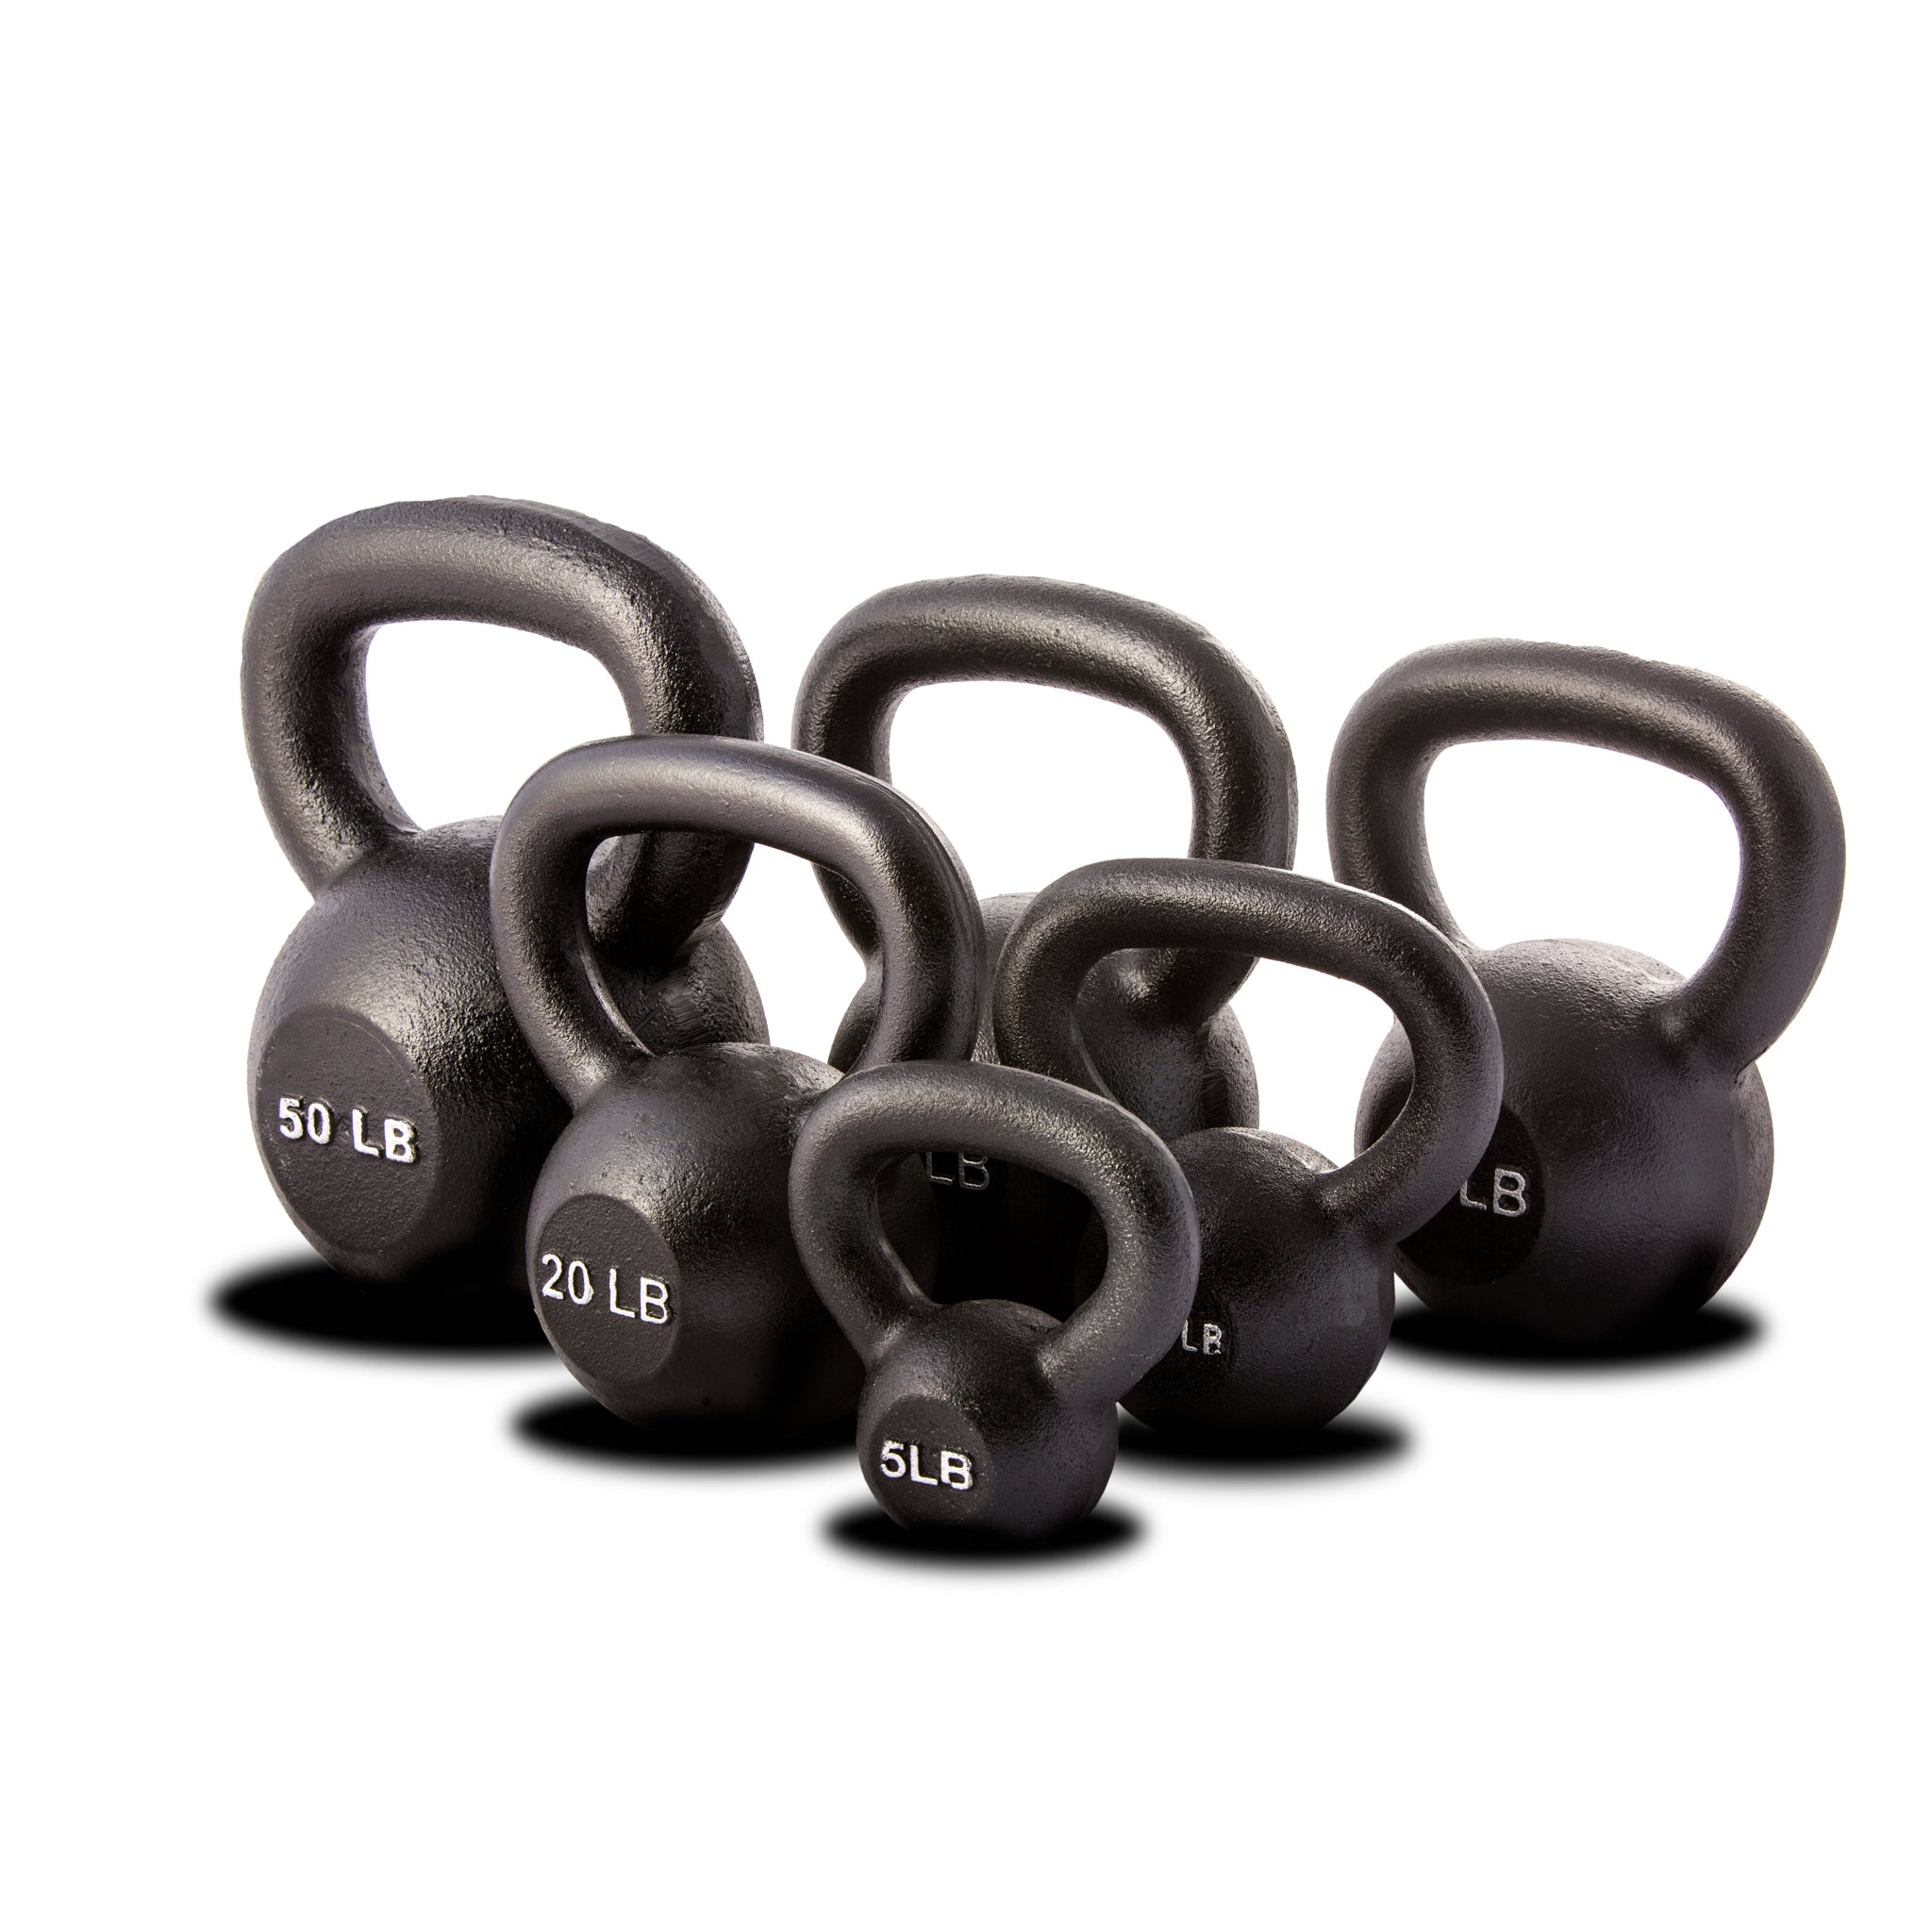 York Hercules Kettlebells (Sold Individually)